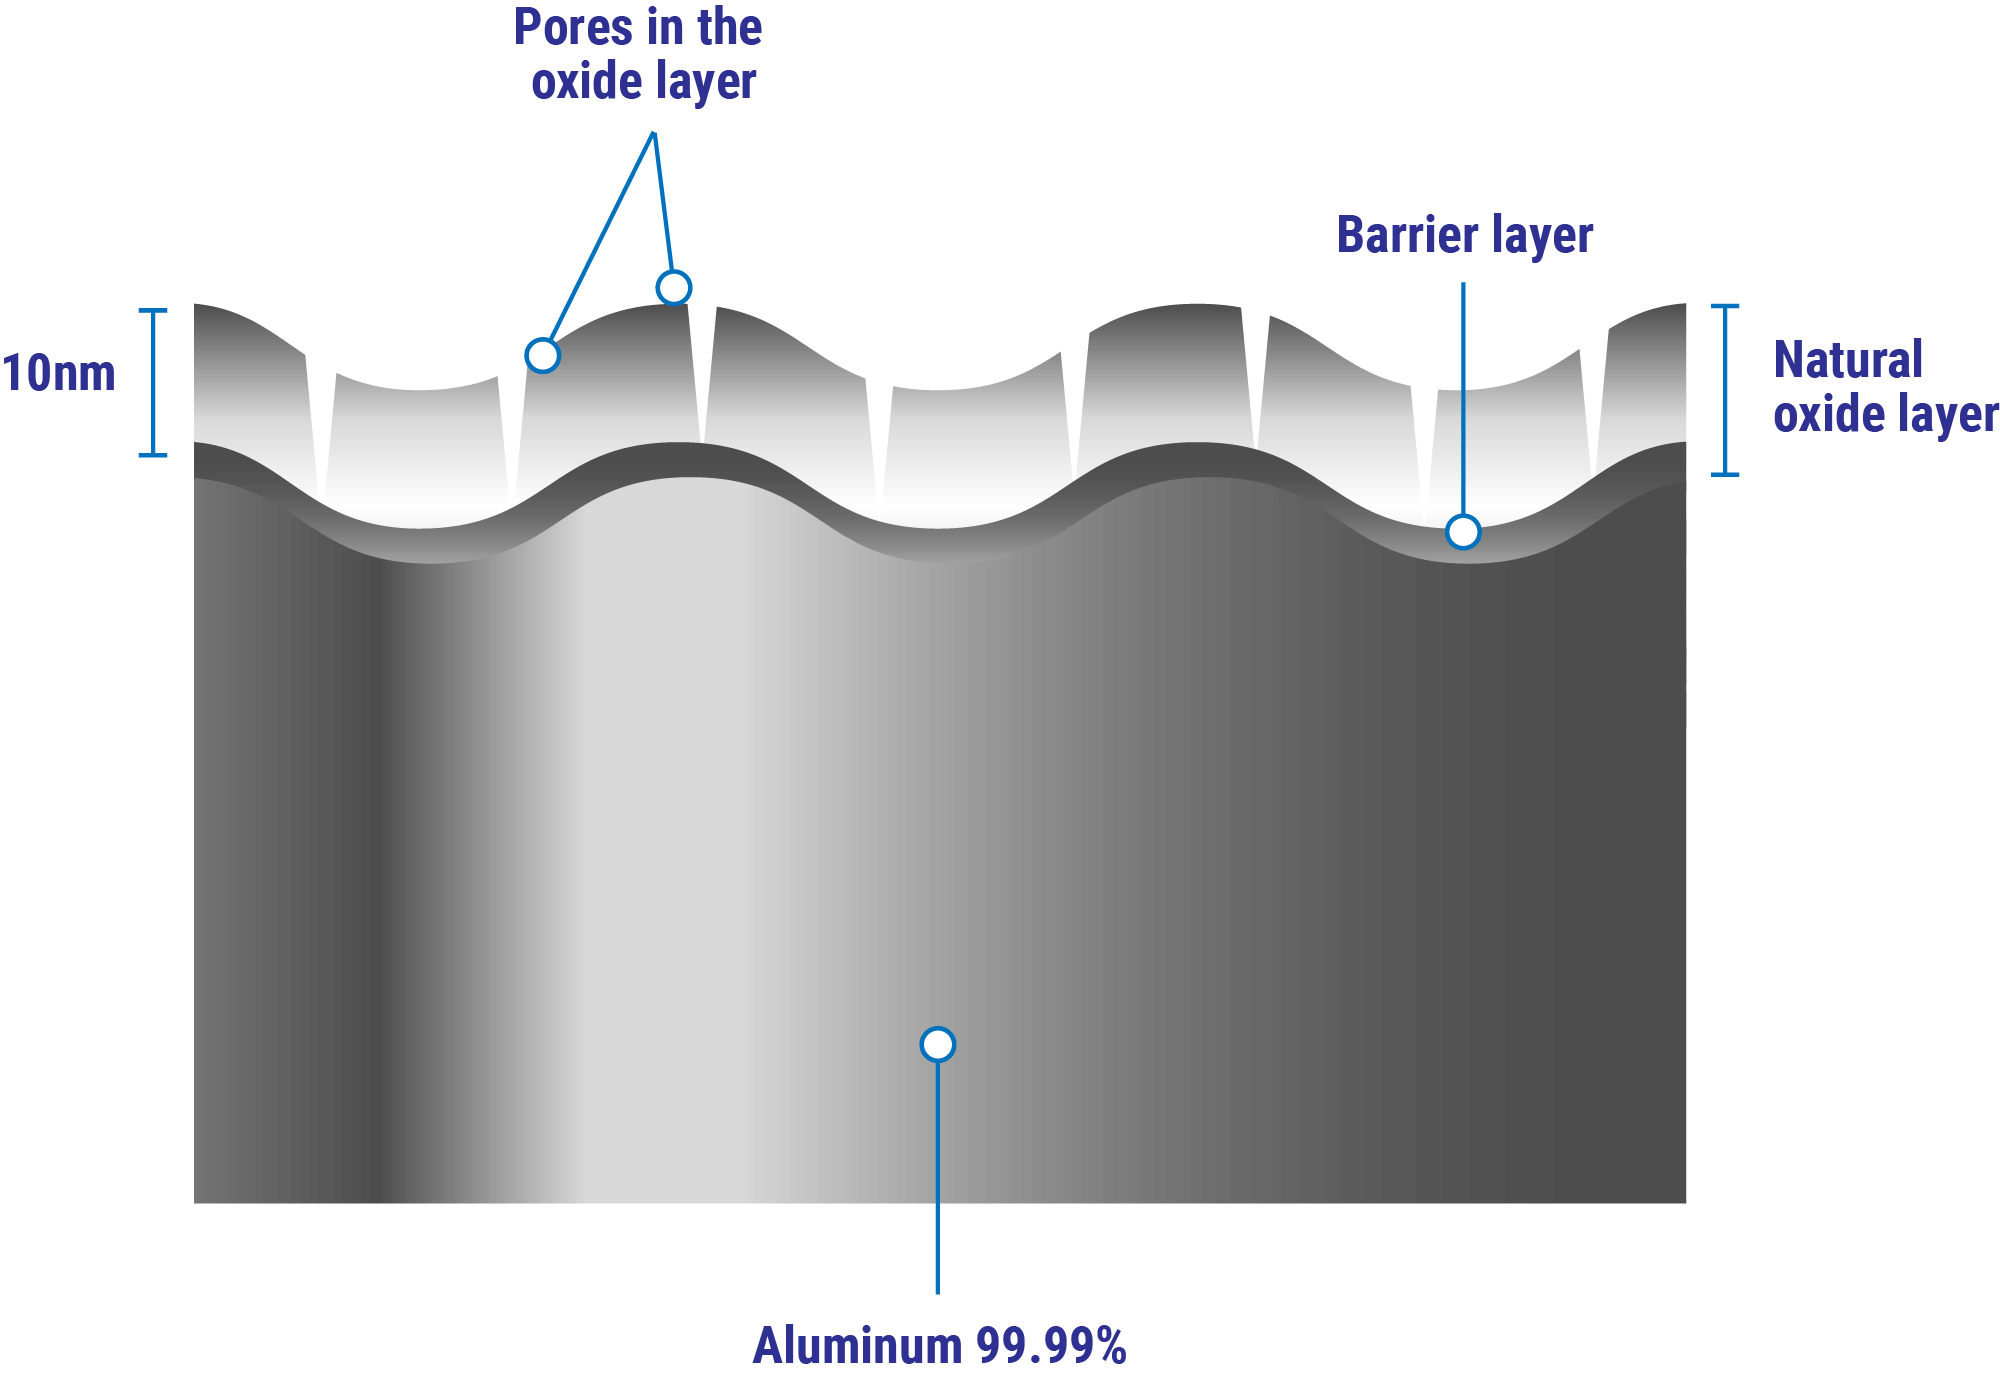 Figure 1. Schematic of the passive oxide film that forms on aluminum.